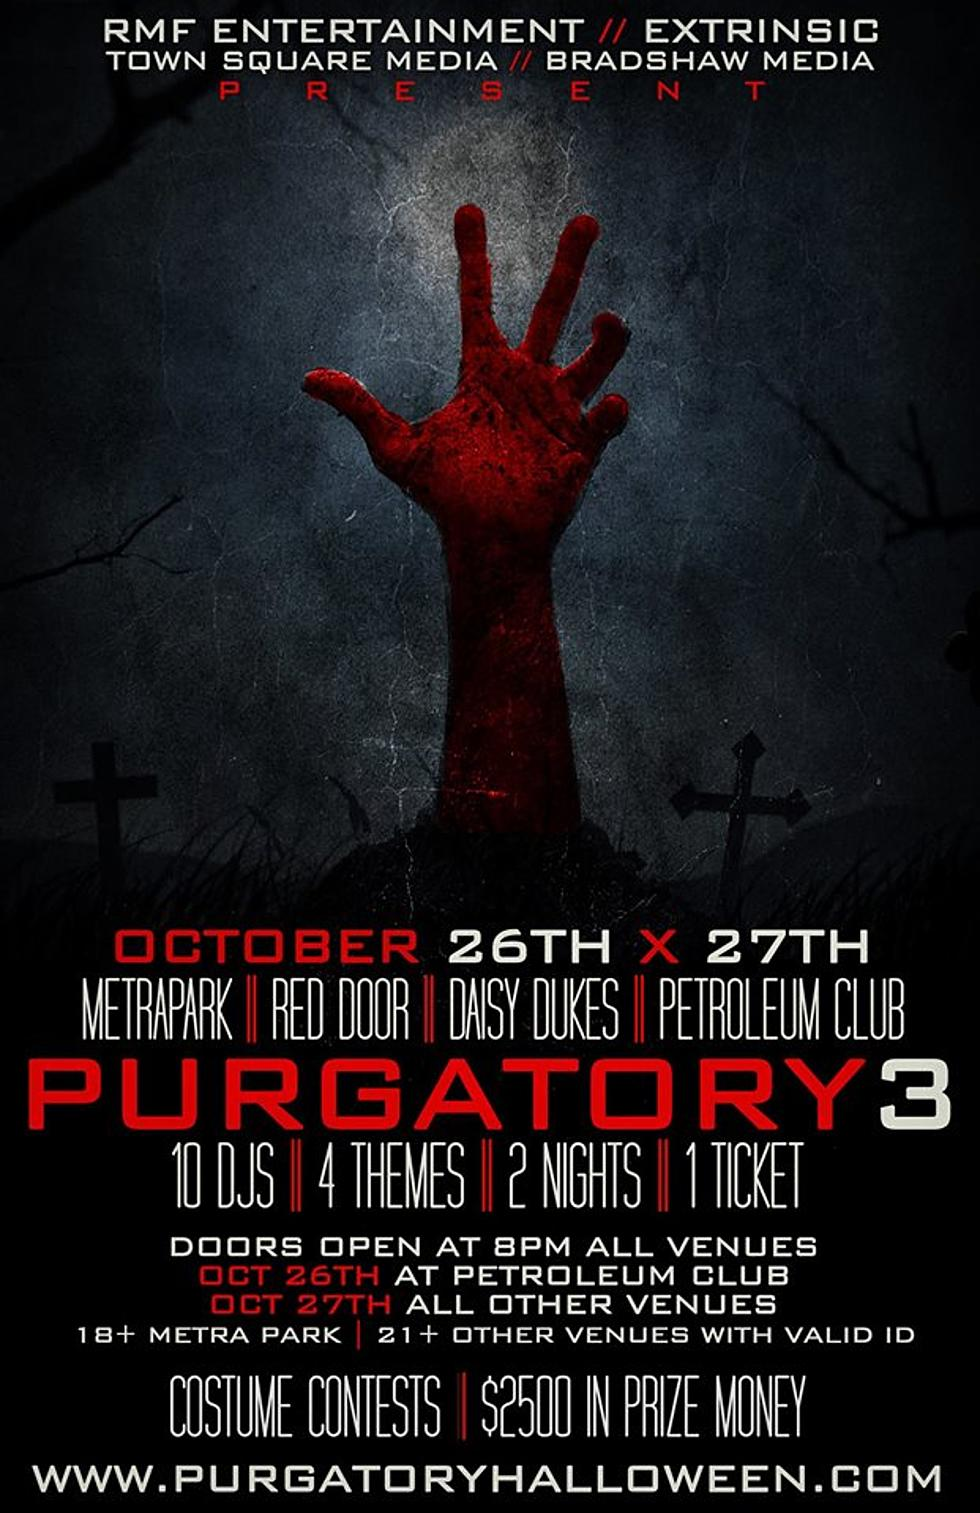 Purgatory The Ultimate Halloween Party